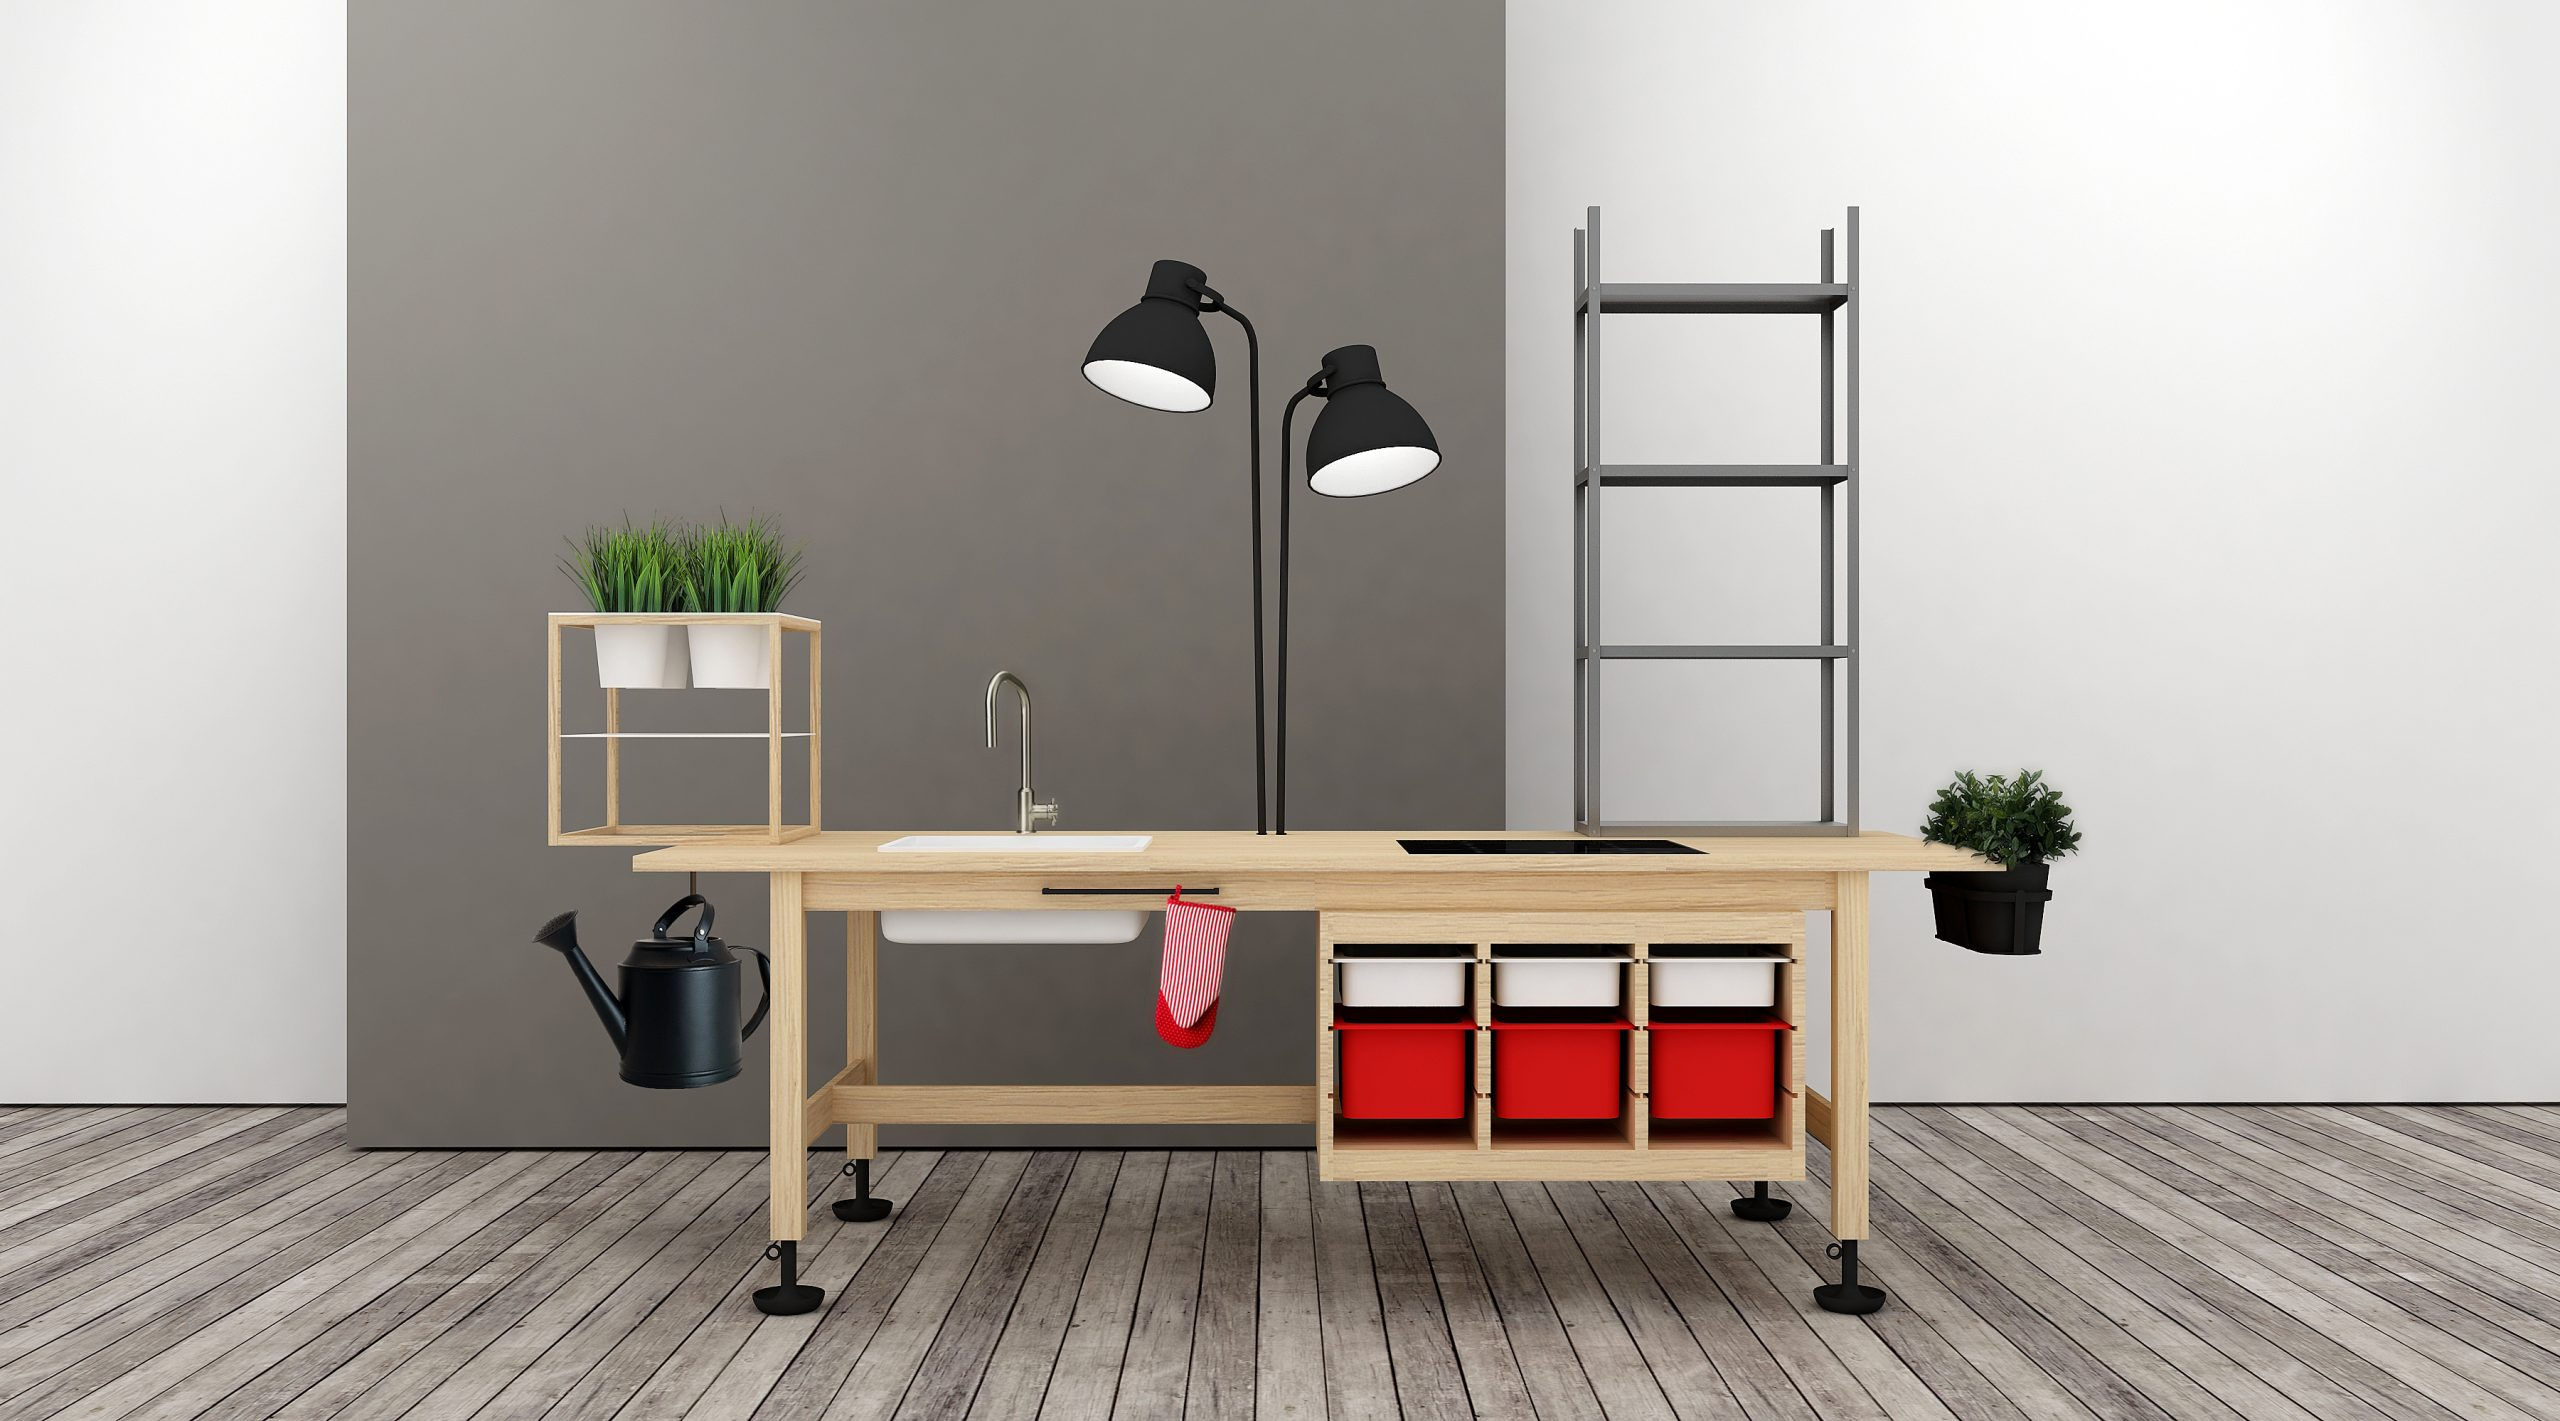 Design District Zagreb Calls Designers & DIYers to Hack IKEA's Products